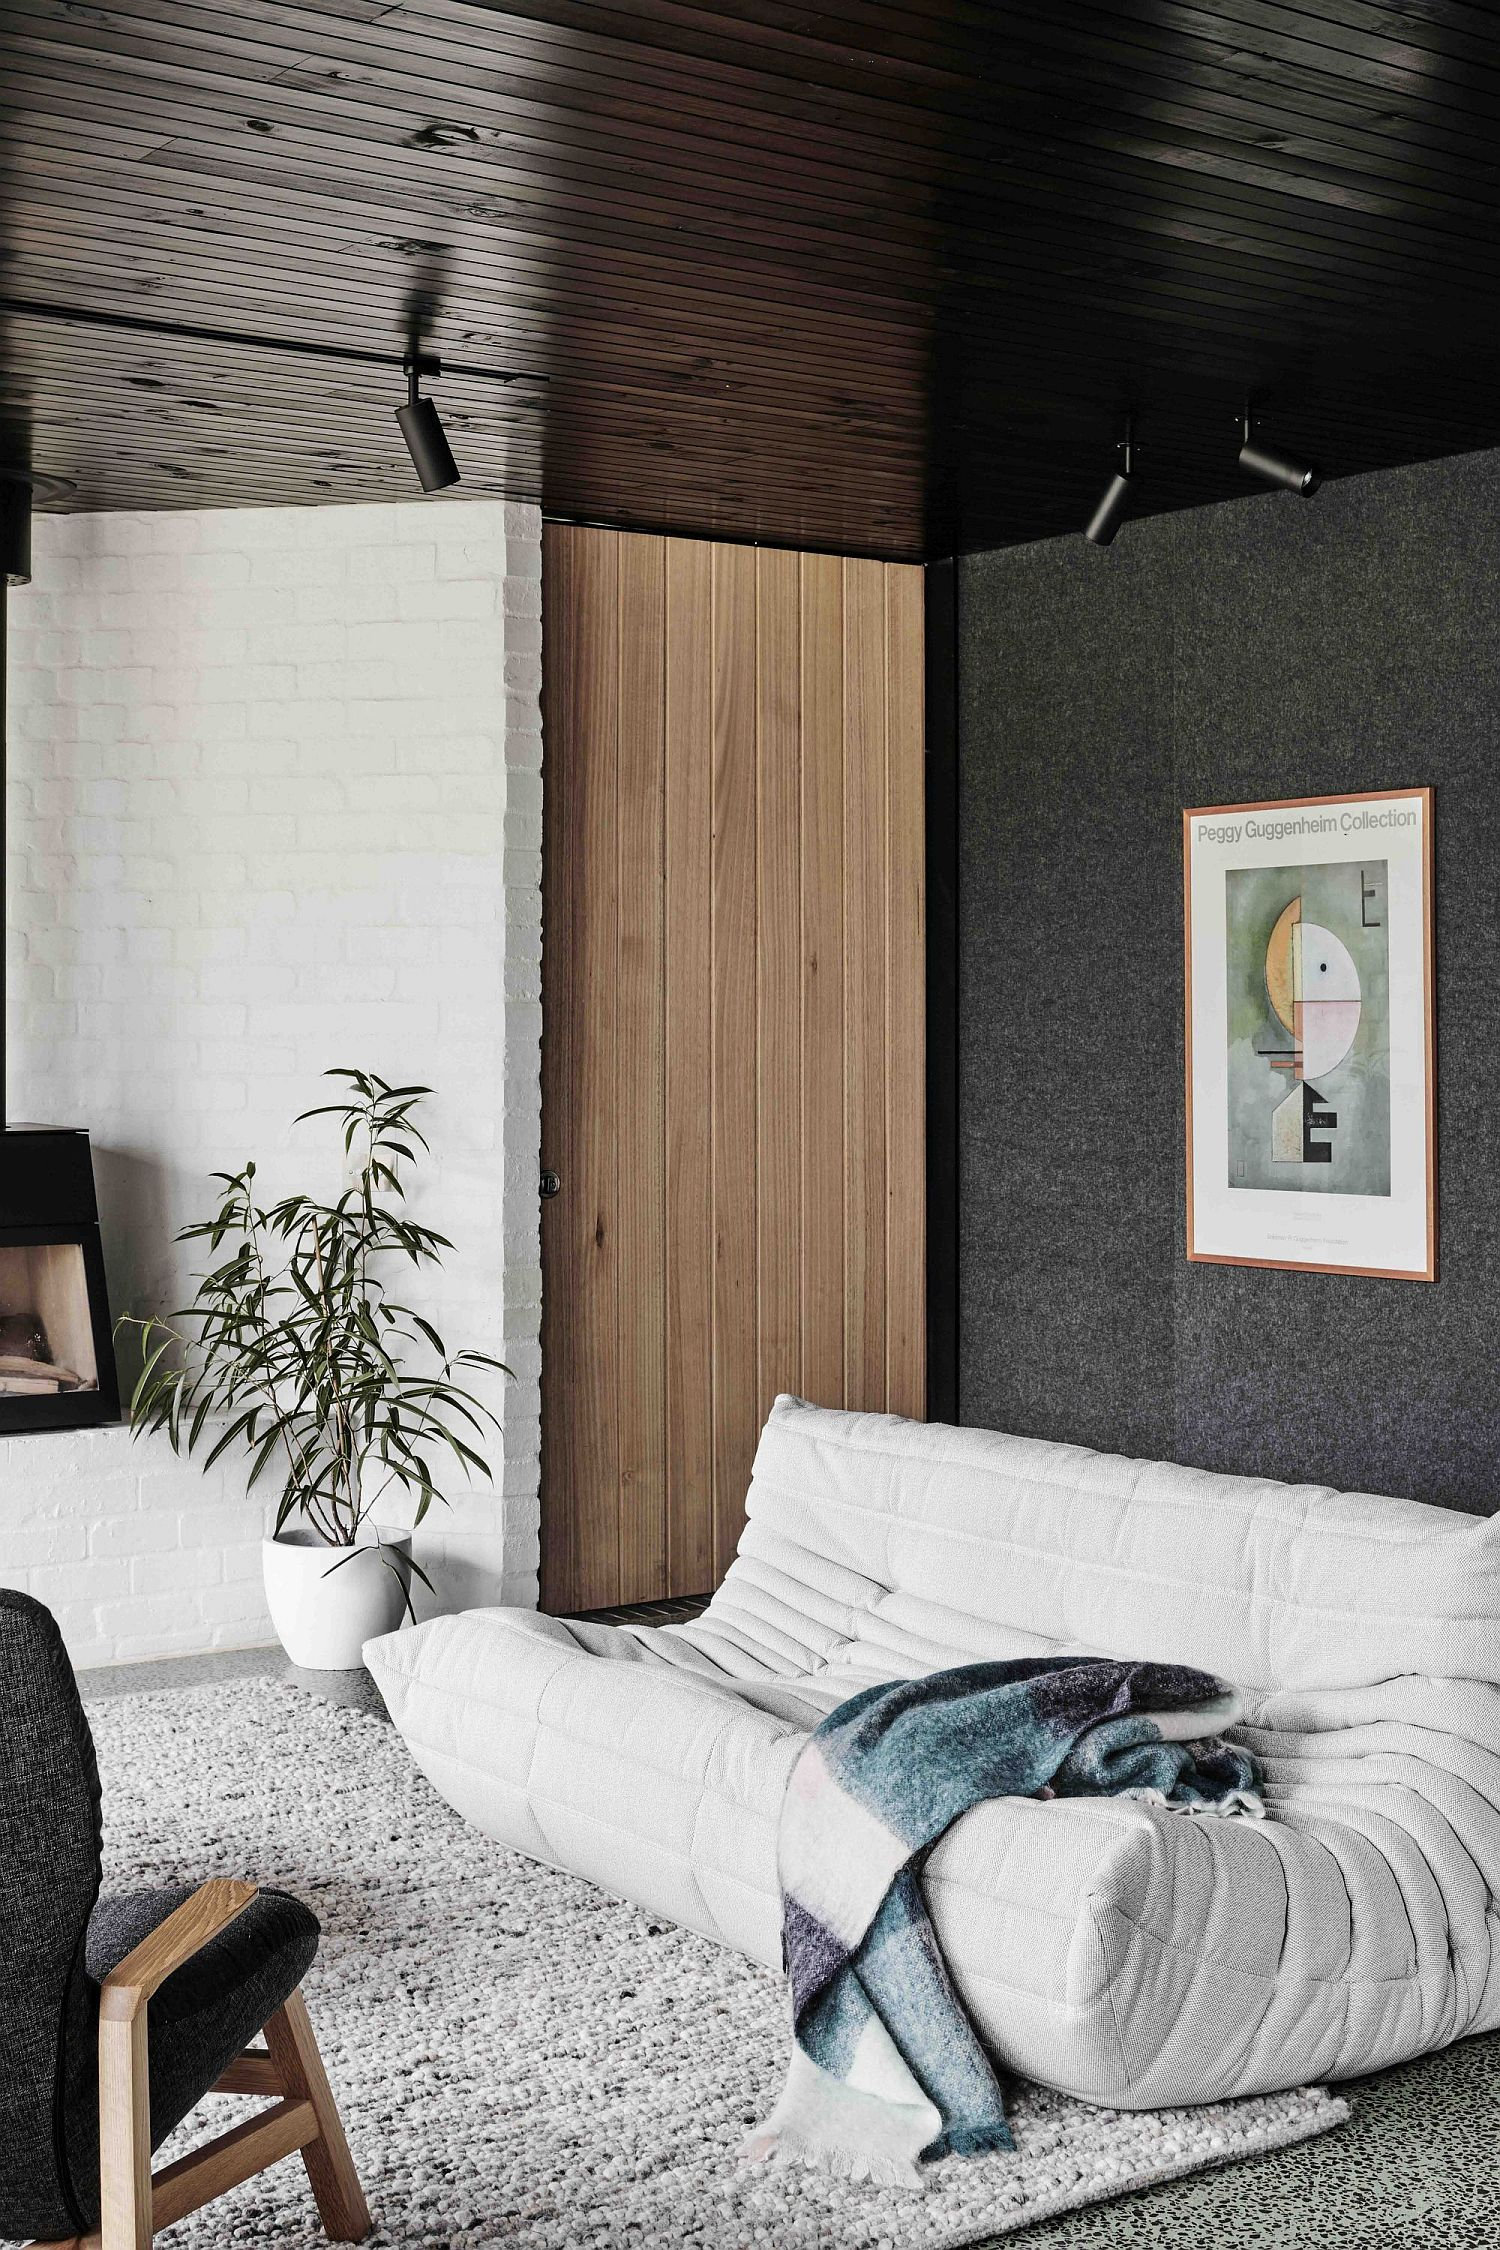 Wood brick and modernity combined inside the smart Aussie home